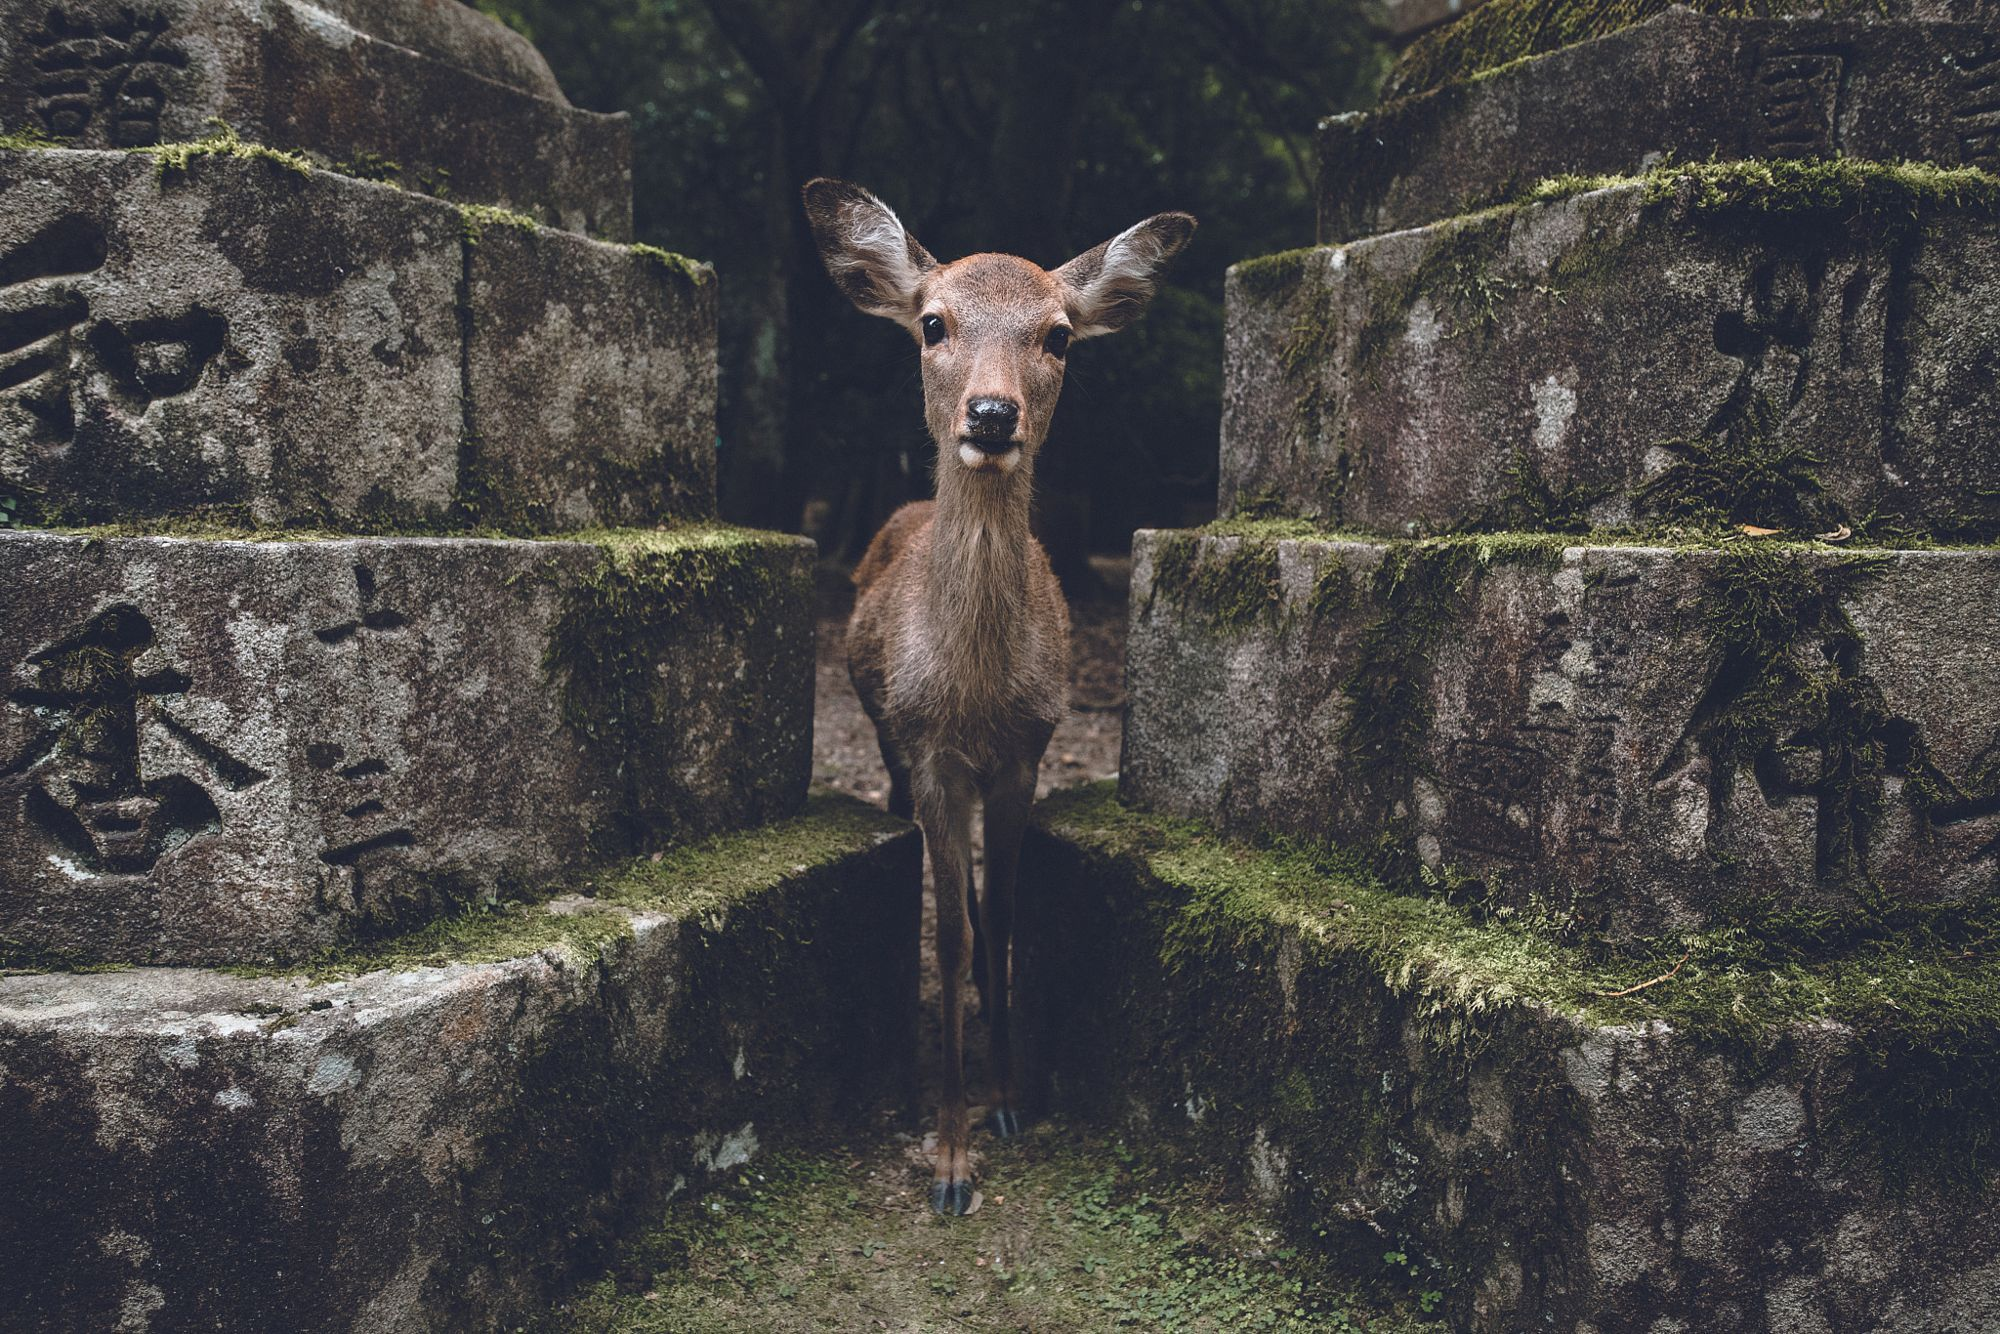 not pictured, the deer trying to eat my camera by Zach Allia on 500px